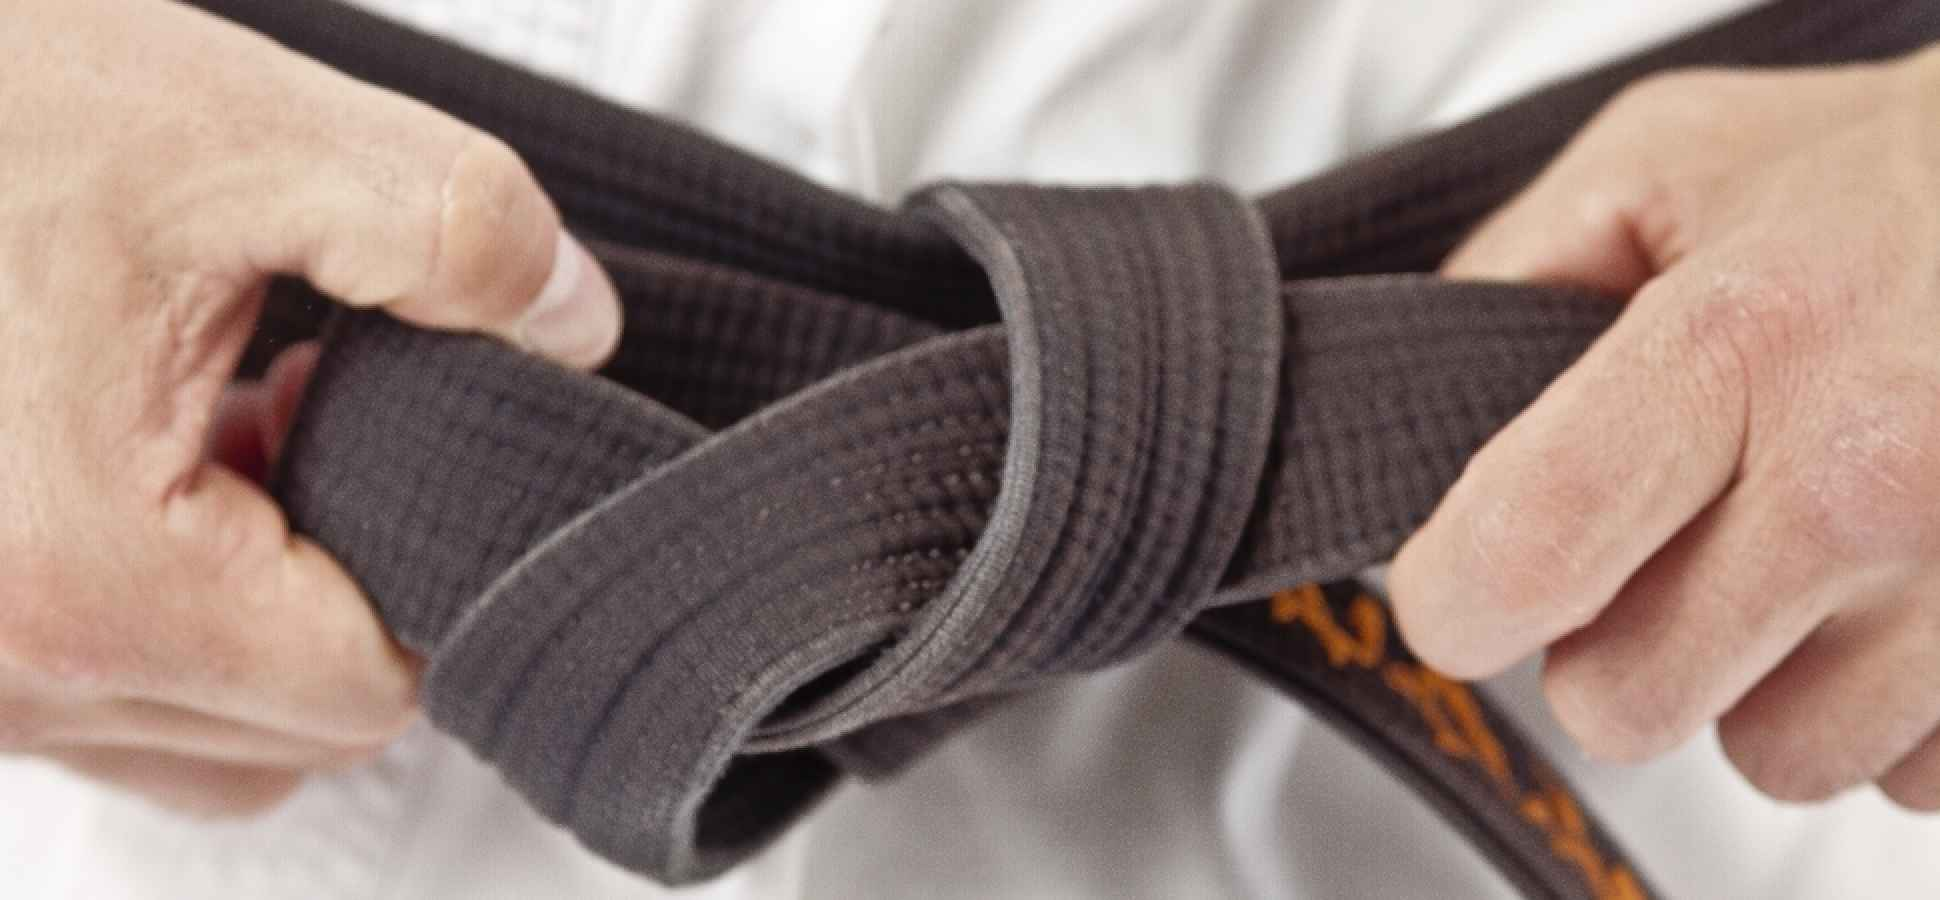 Applying 8 Key Concepts of a 3rd Degree Black Belt to Business Growth